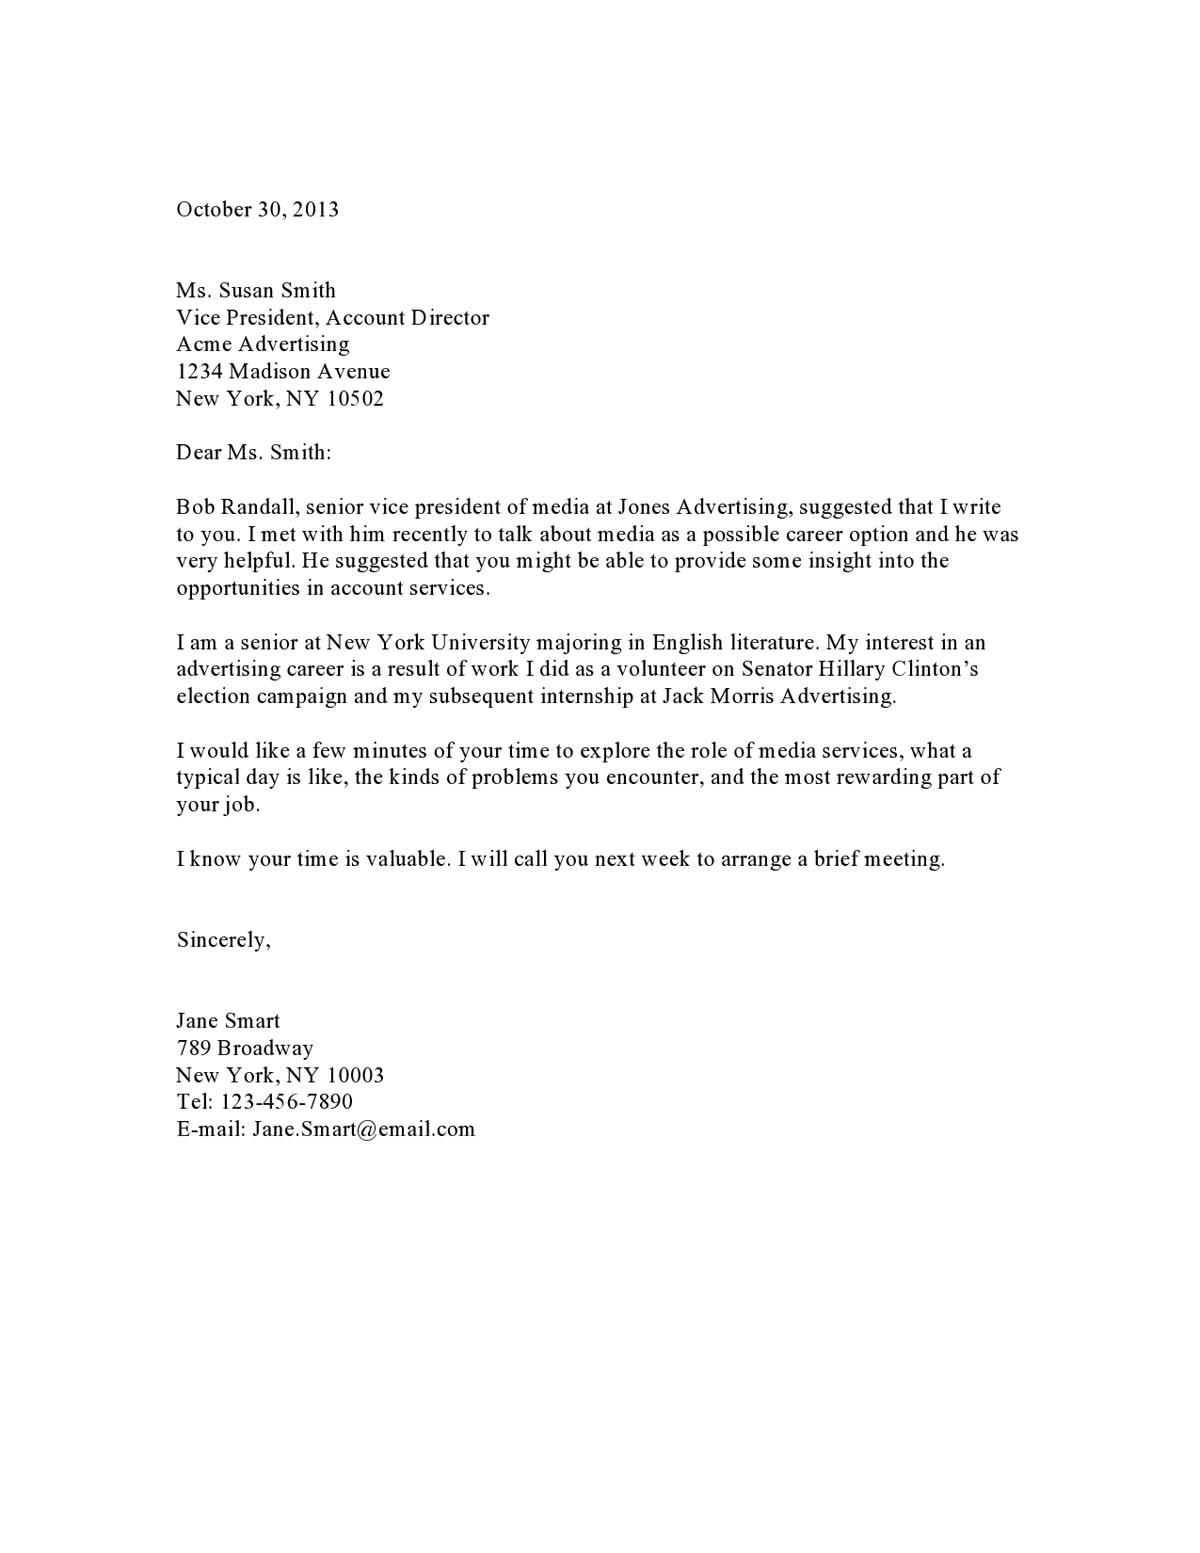 cover letter for any open position - sample cover letter for applying a job